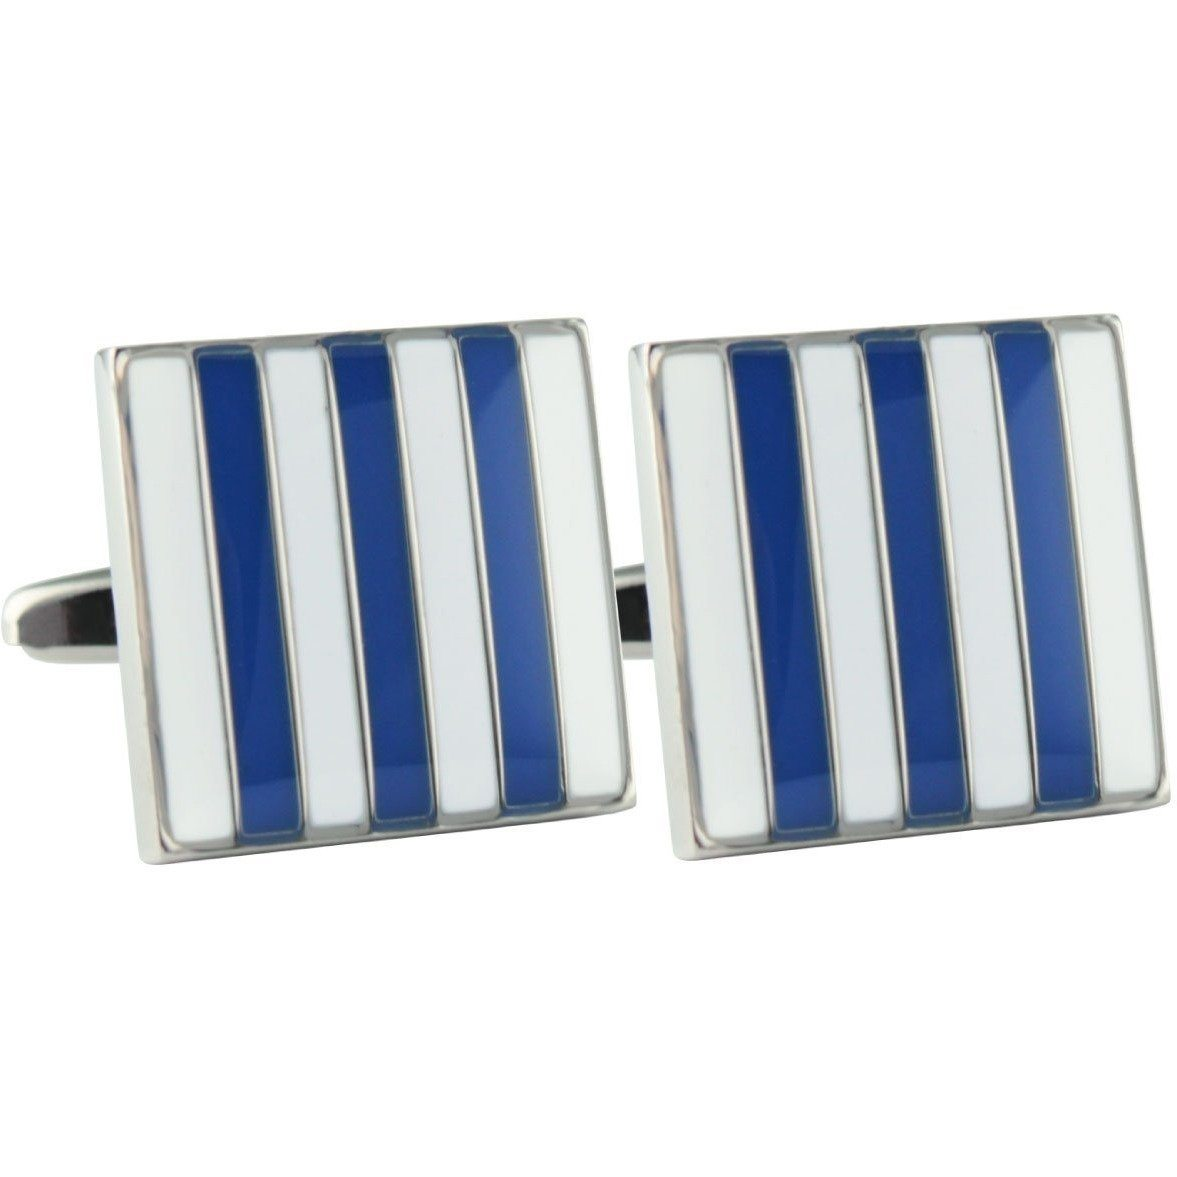 Colour North Melbourne Kangaroos AFL Cufflinks Novelty Cufflinks AFL Colour North Melbourne Kangaroos AFL Cufflinks